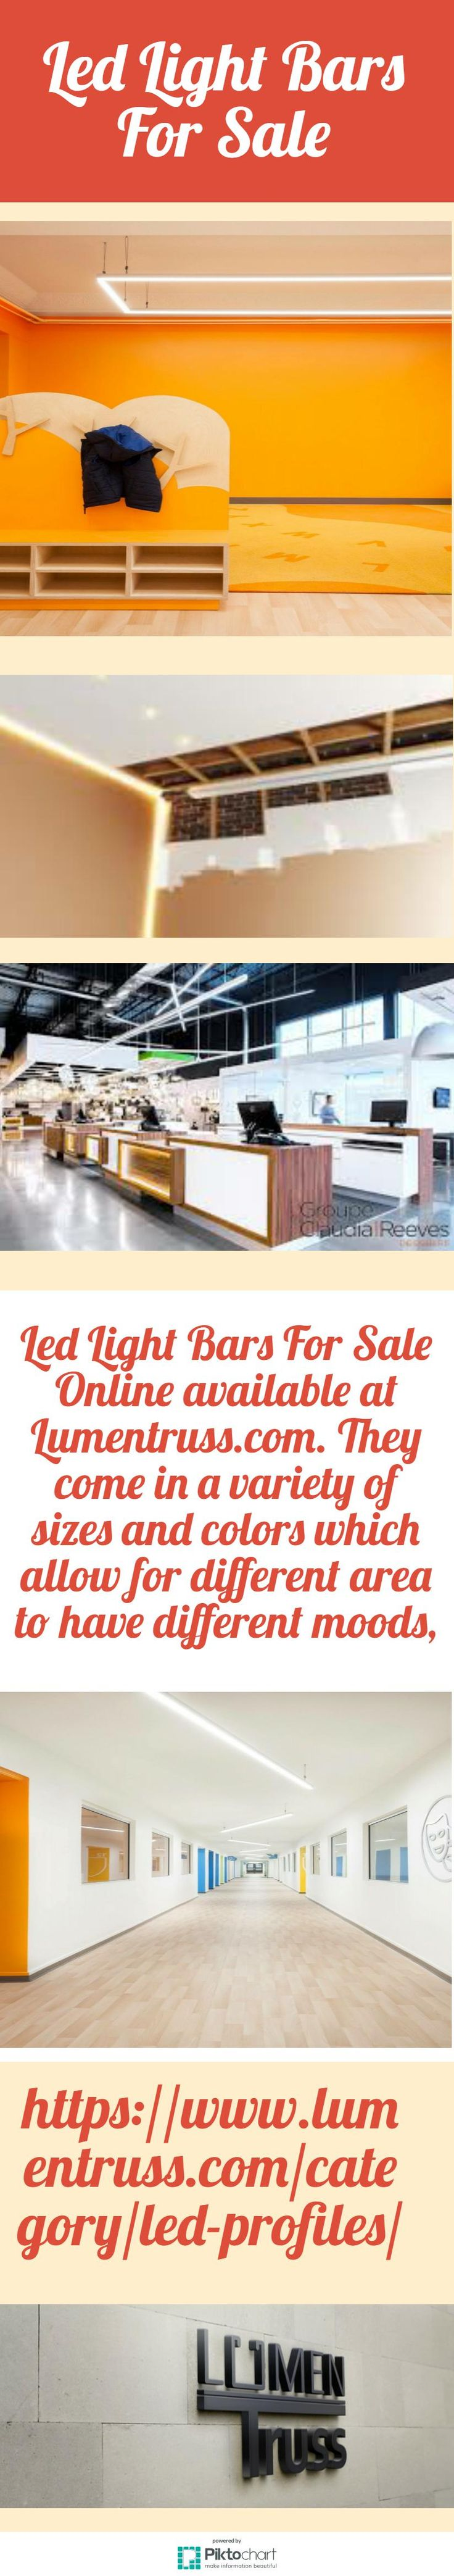 We provide Led Light Bars For Sale Online. They are powerful and effective additions to decorate your home or office. For more information, visit our website:  https://www.lumentruss.com/category/led-profiles/